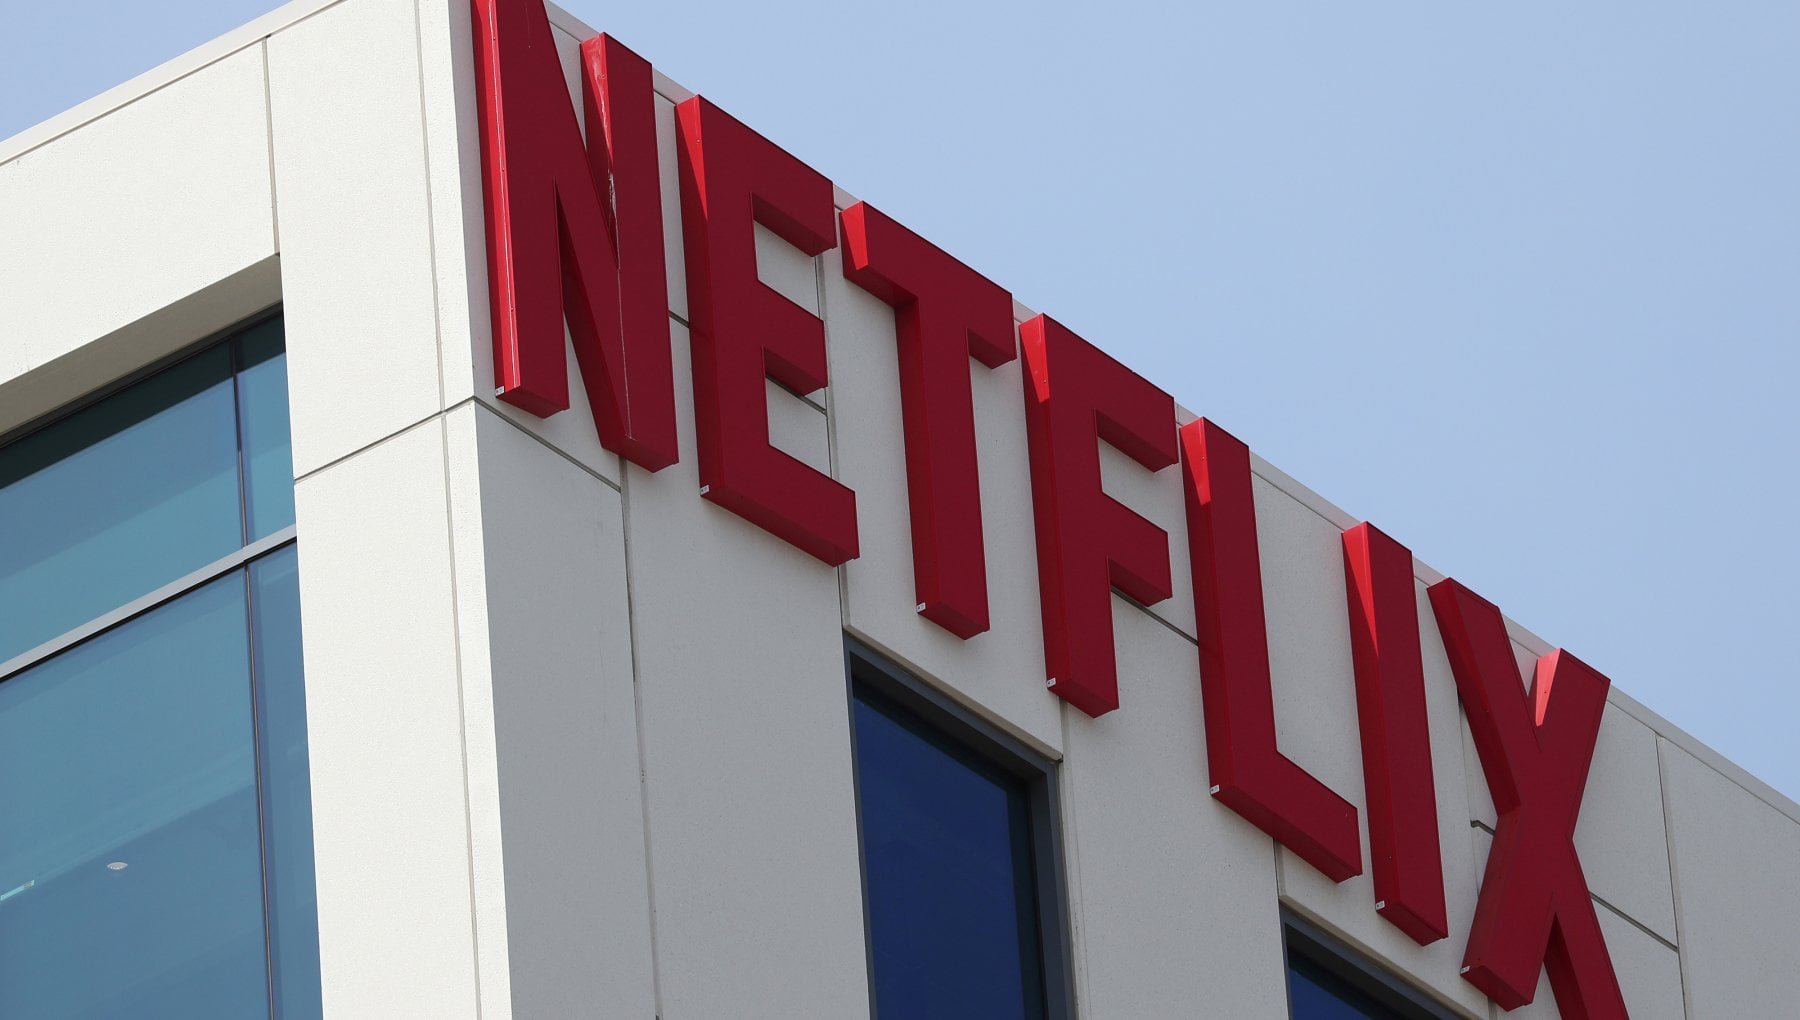 Netflix surpasses 200 million subscribers thanks to (also) the pandemic.  Cash flow improves, headline shifts to Wall Street